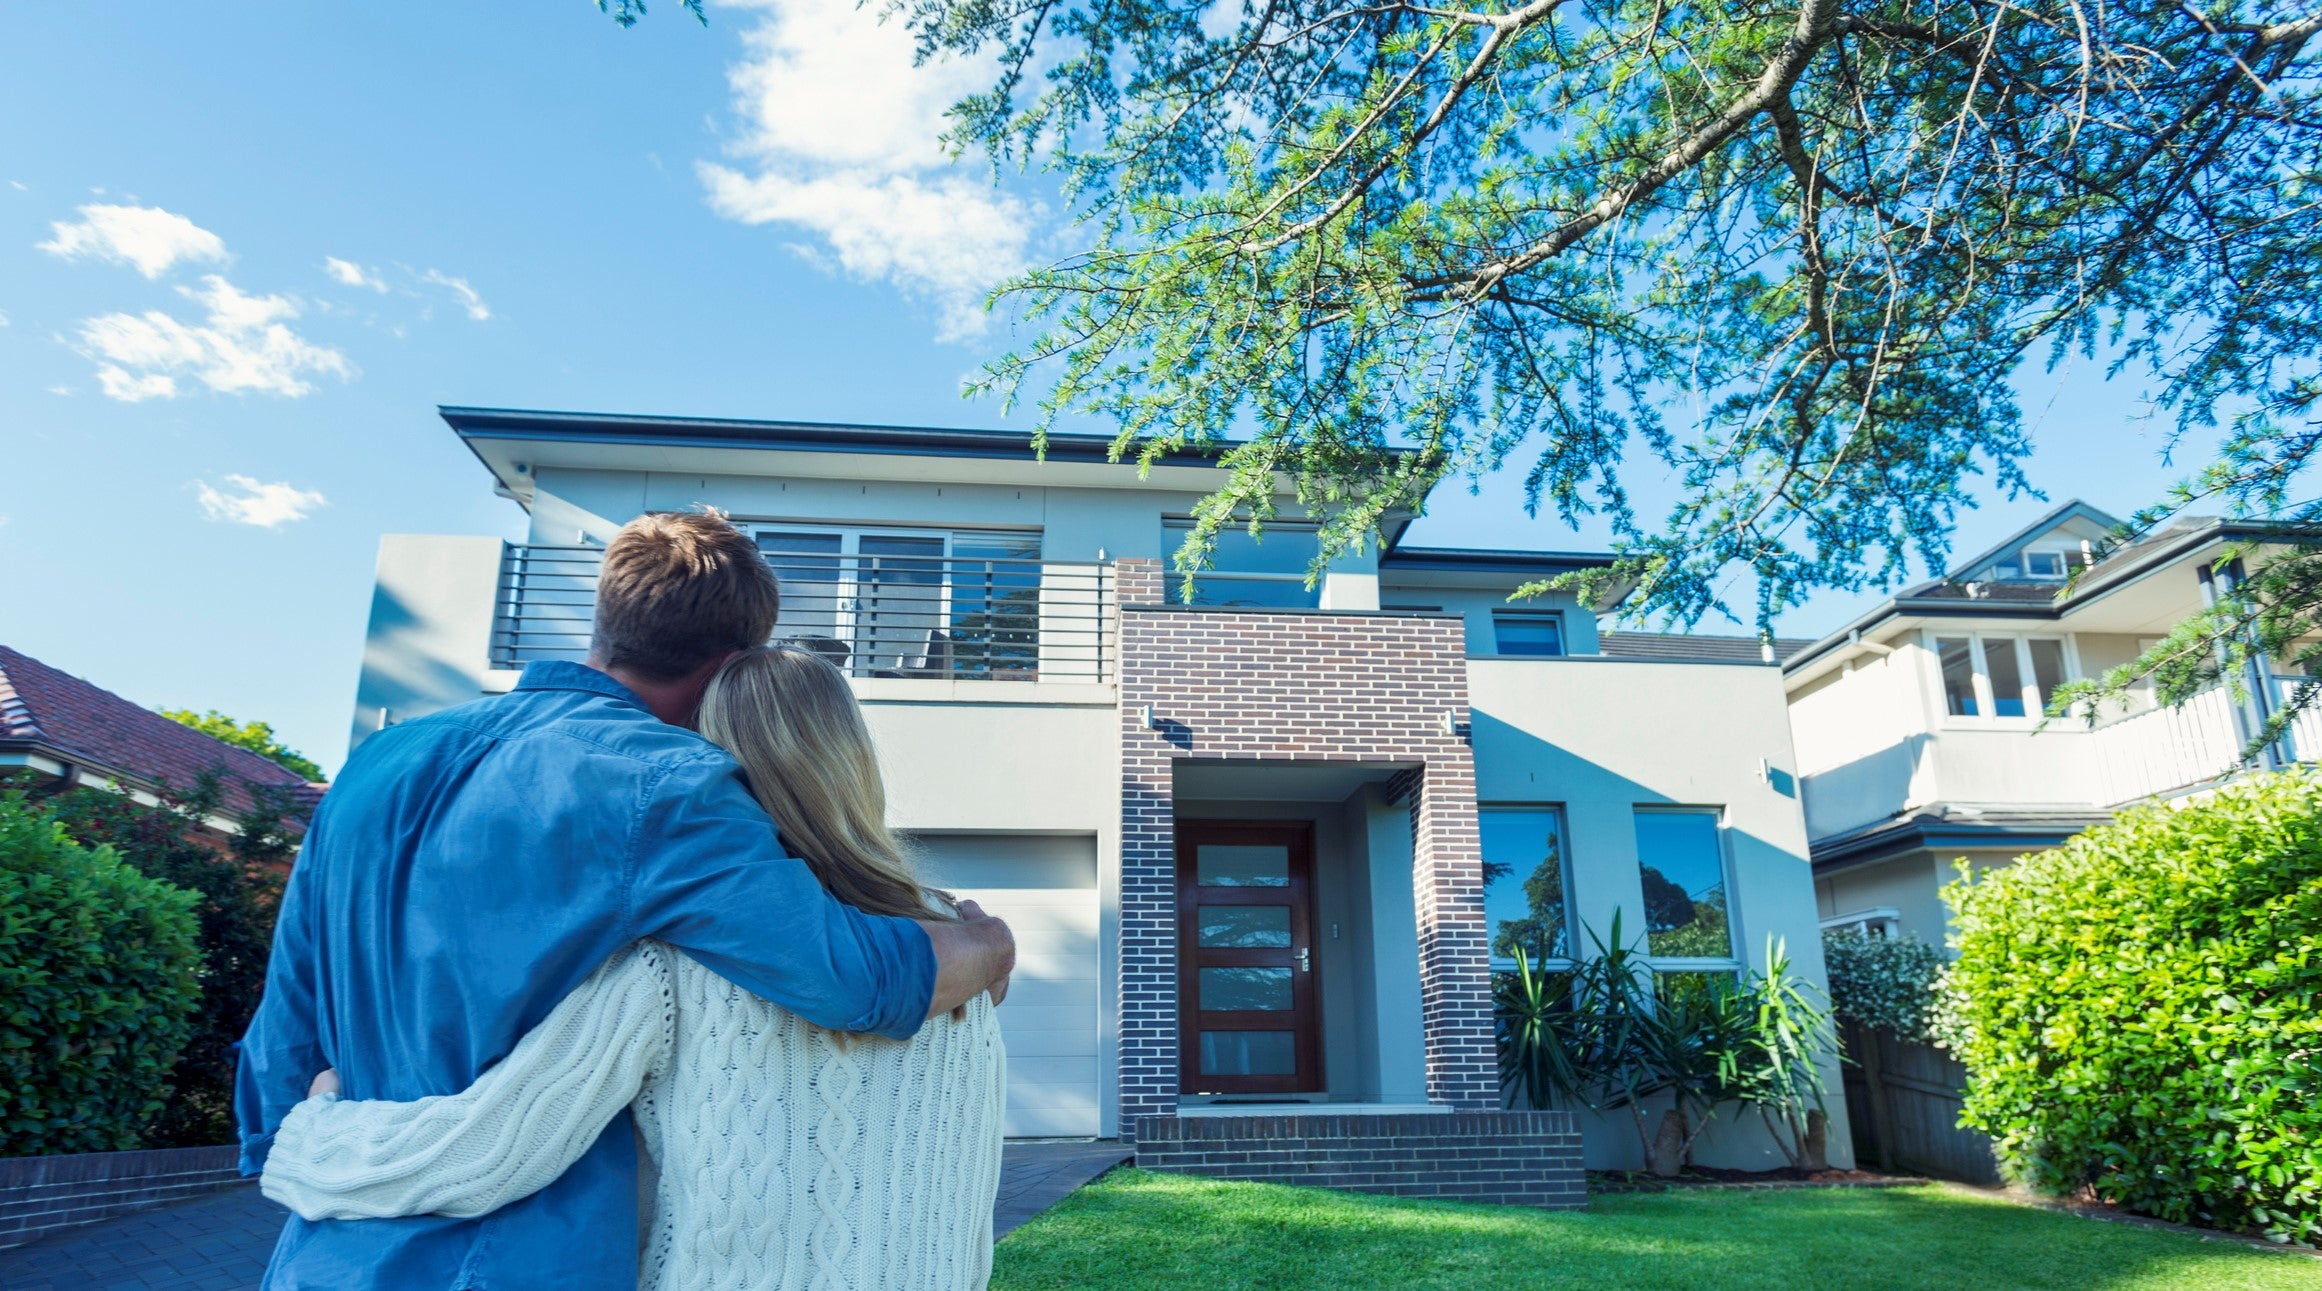 Home Security Tips for First-Time Home Buyers